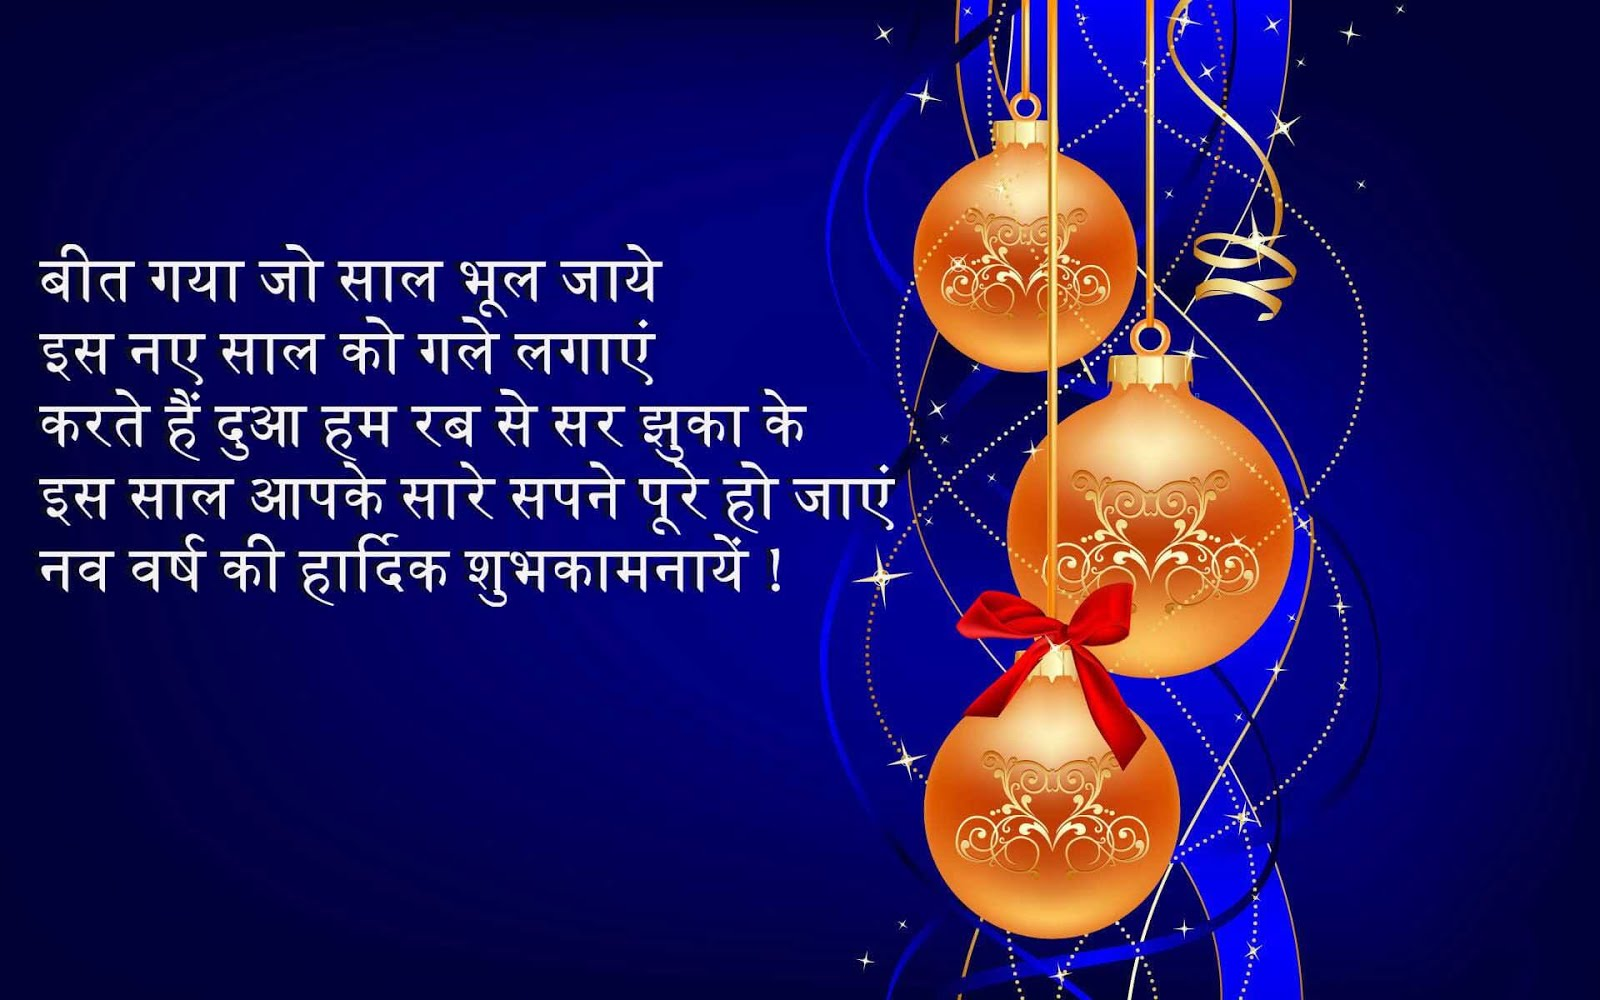 Happy New Year 2018 Wishes: SMS, Facebook Status , WhatsApp Messages & Status, Inspirational  Quotes, Wishes, Shayari In Hindi, Greetings